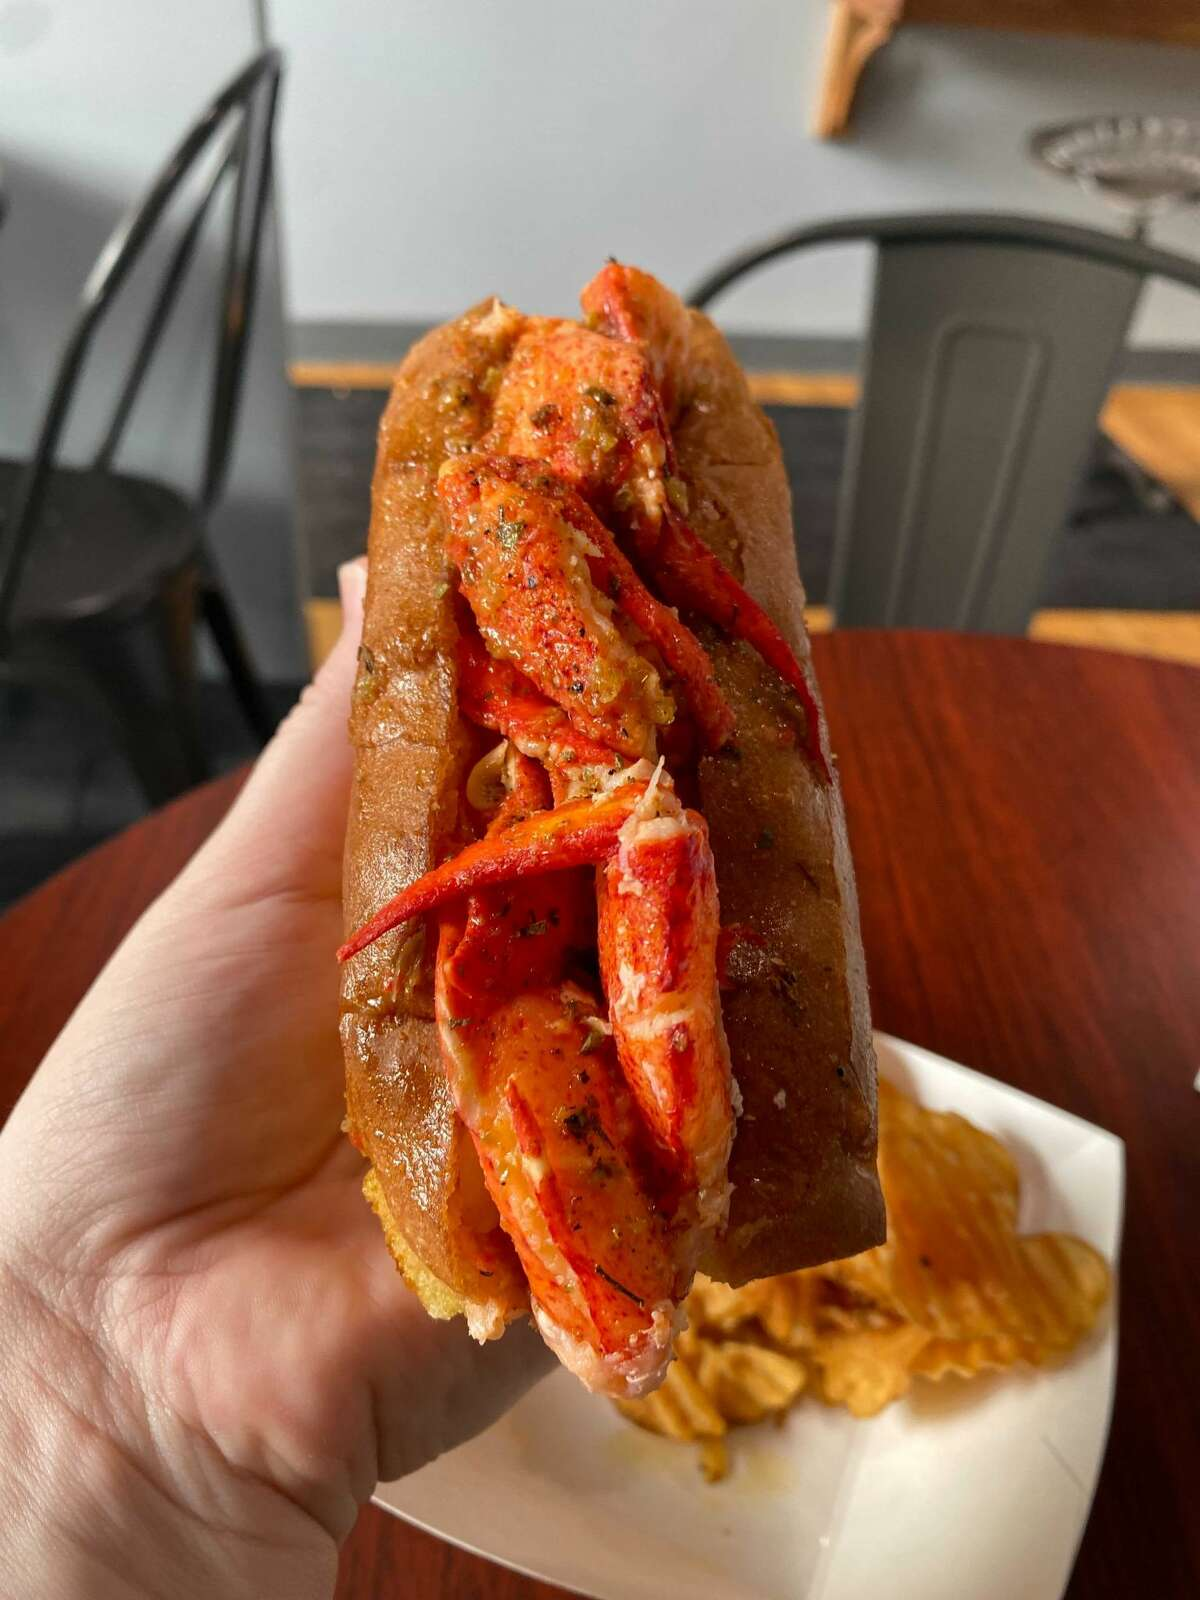 The Heat Wave lobster roll, shown at LobsterCraft's West Hartford restaurant, has just the right amount of tongue-tingling spice from pepper-infused butter.